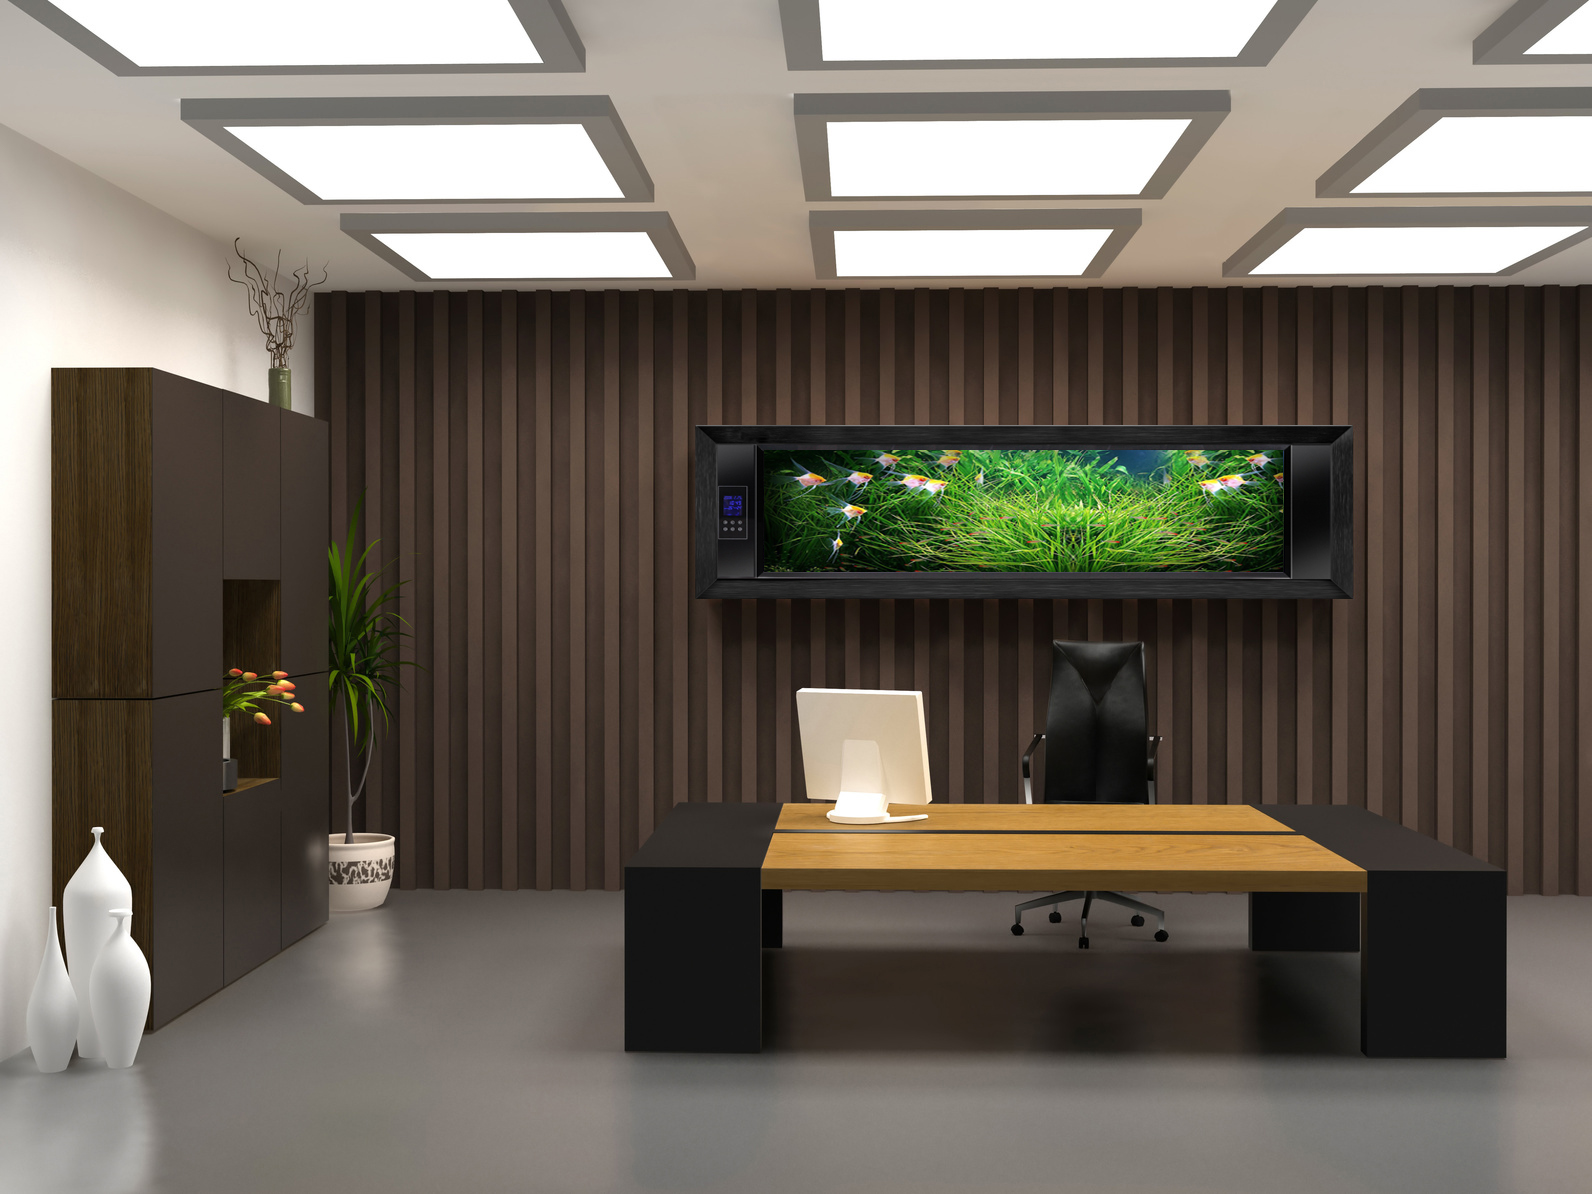 Minimalist Computer Desk For Better Productivity: Luxury And Modern Computer Furniture For Interior Design And Decorating Of Office At Home Apartment